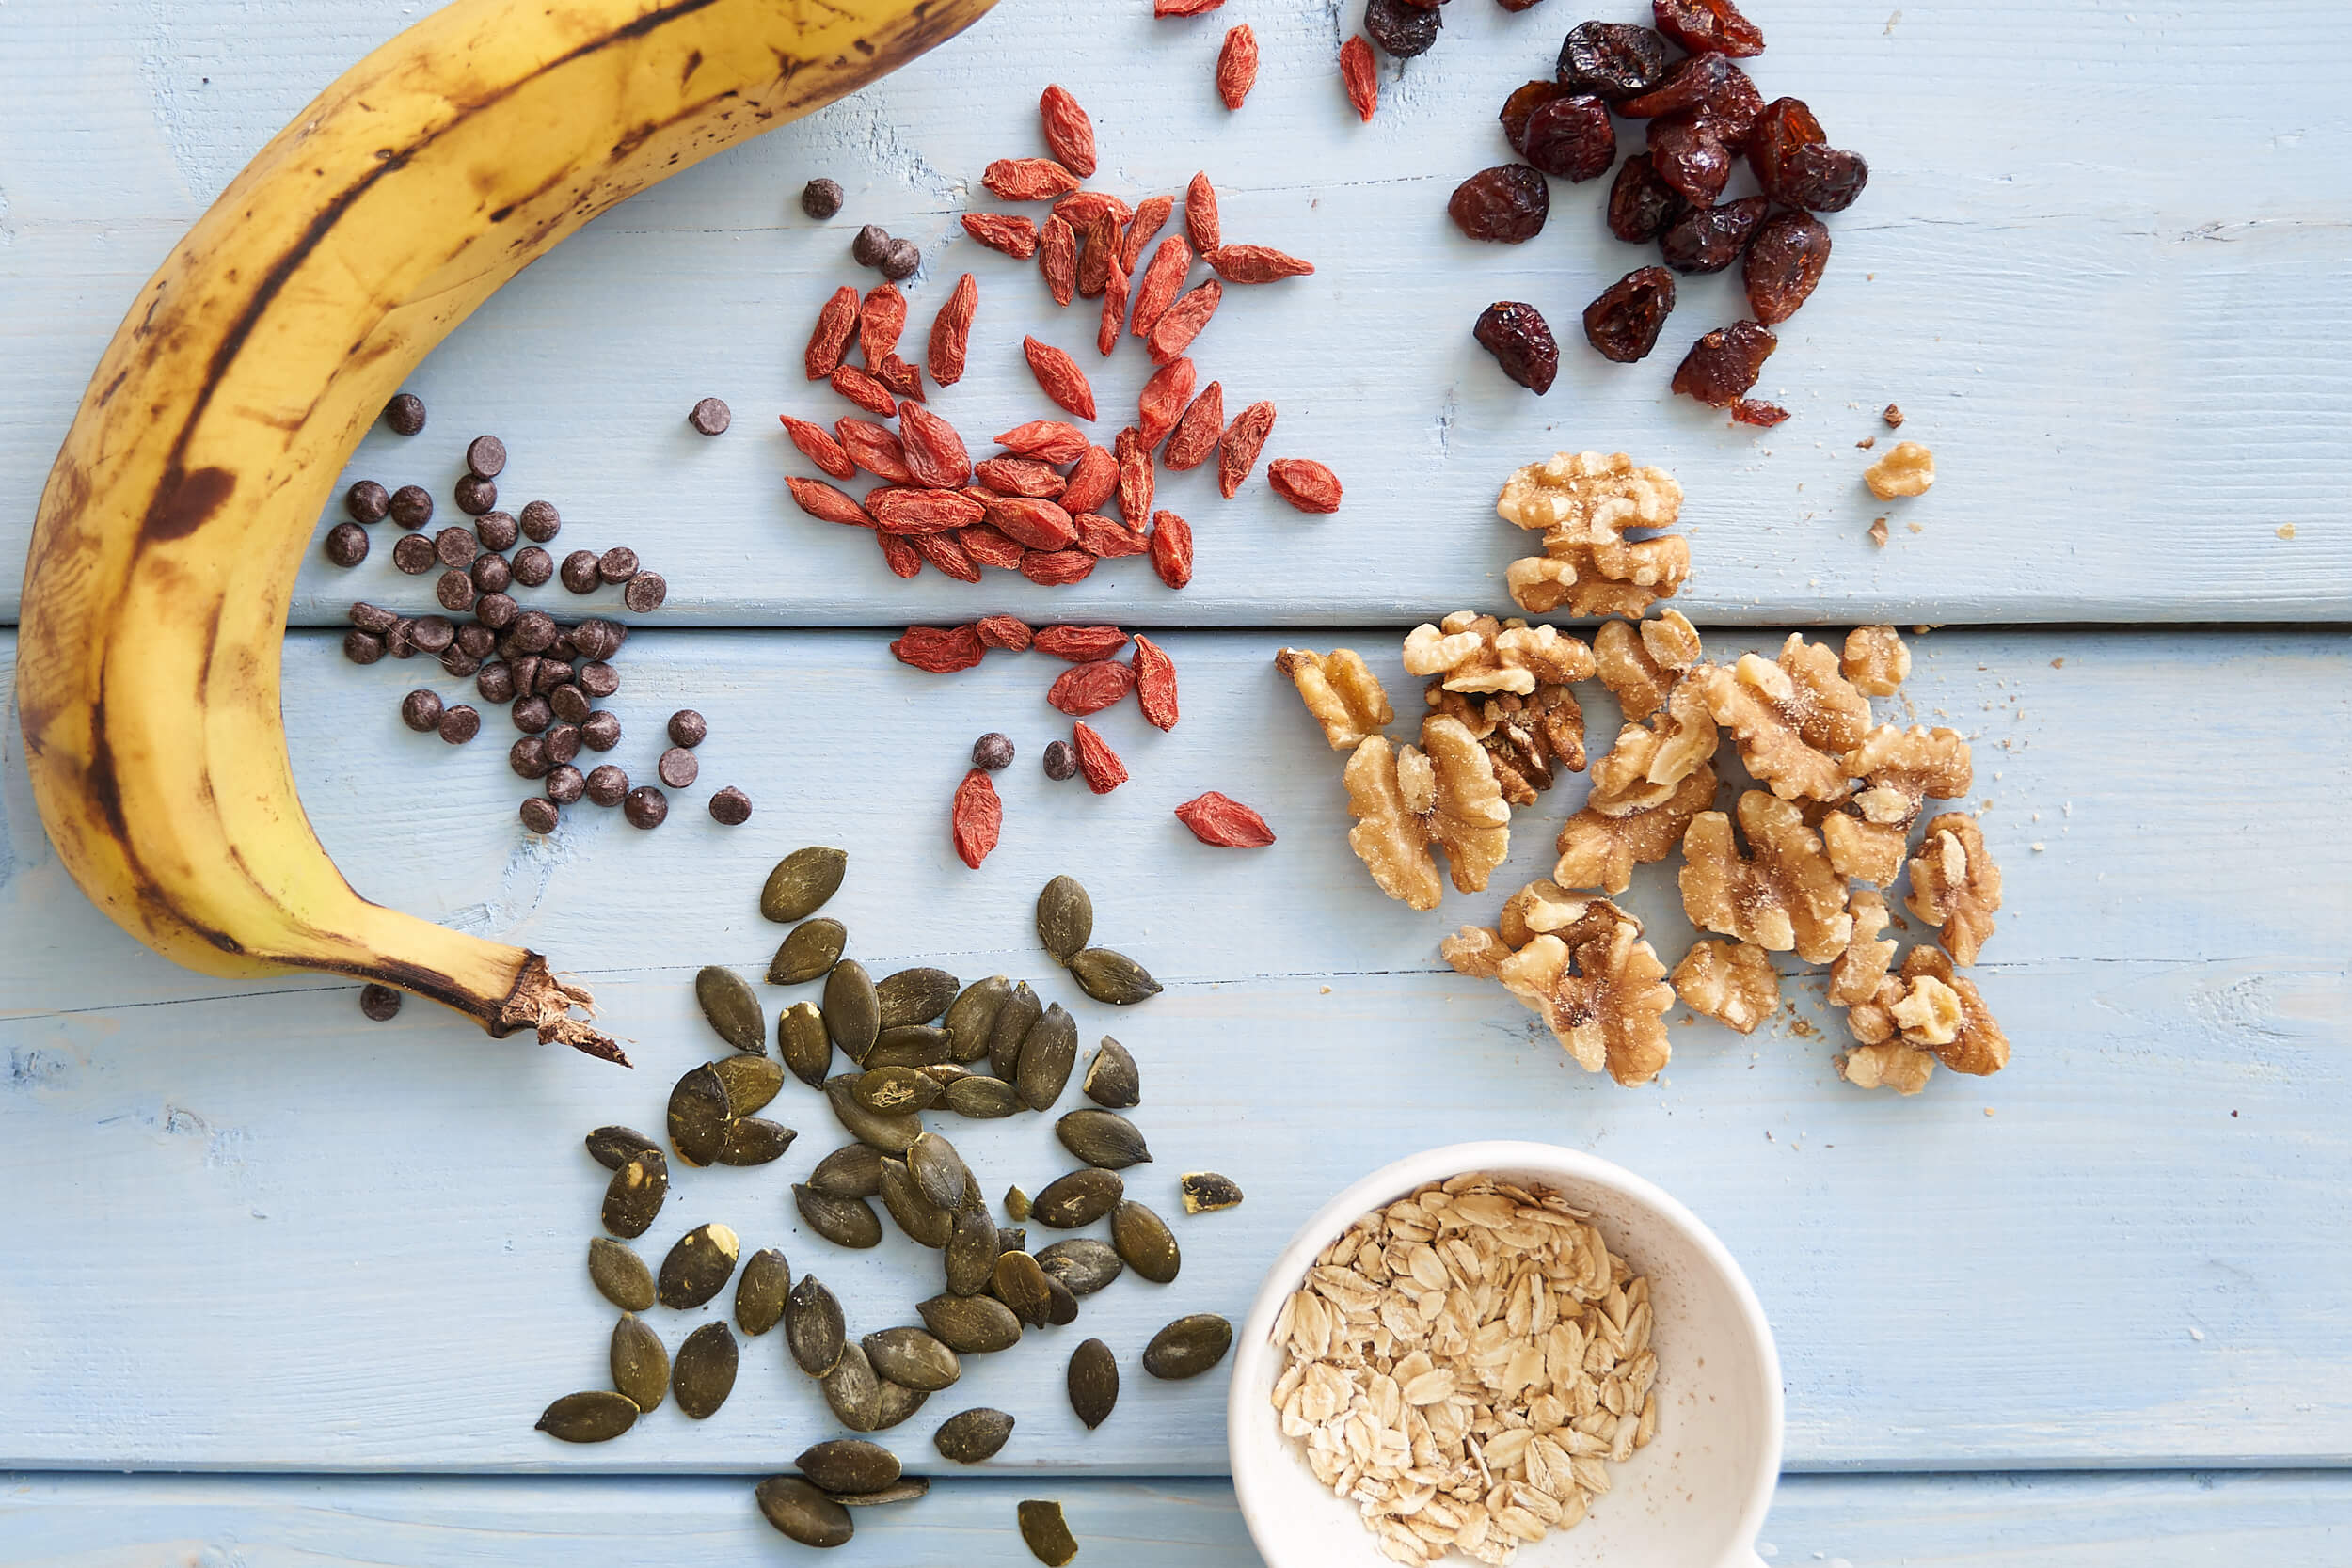 chocolate chips goji berries walnuts pumpkin seeds and banana for granola bars